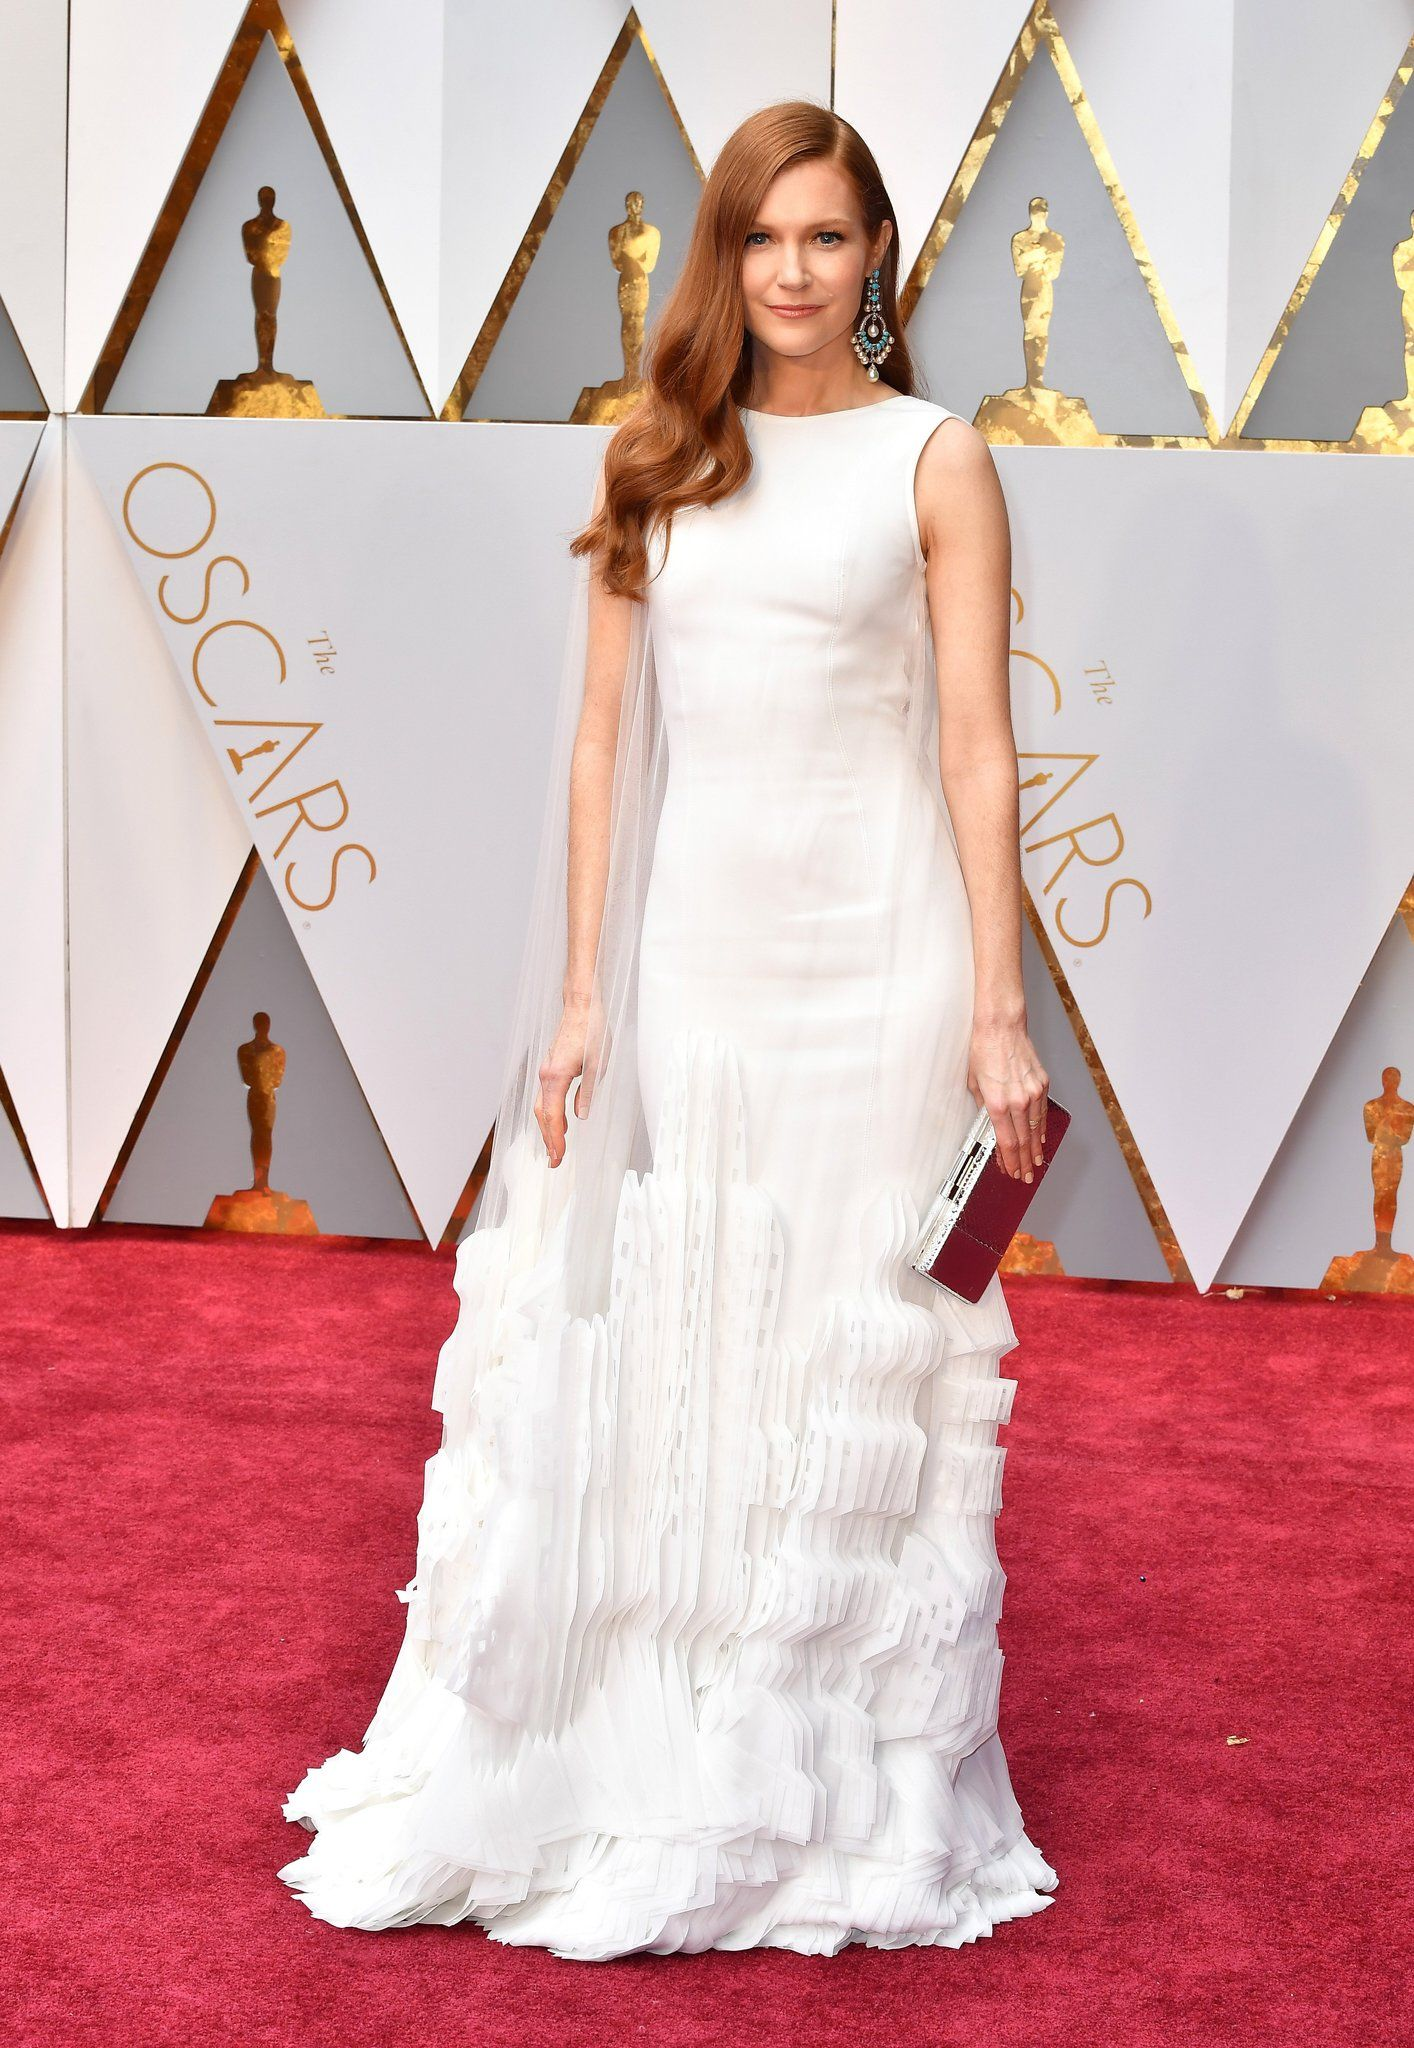 Darby Stanchfield Oscar 2017 Red Carpet Arrival Oscars Red Carpet Arrivals 2017 Oscars 2017 Photos 89th Academy Awards Red Carpet Oscars Award Show Dresses Oscars 2017 Red Carpet